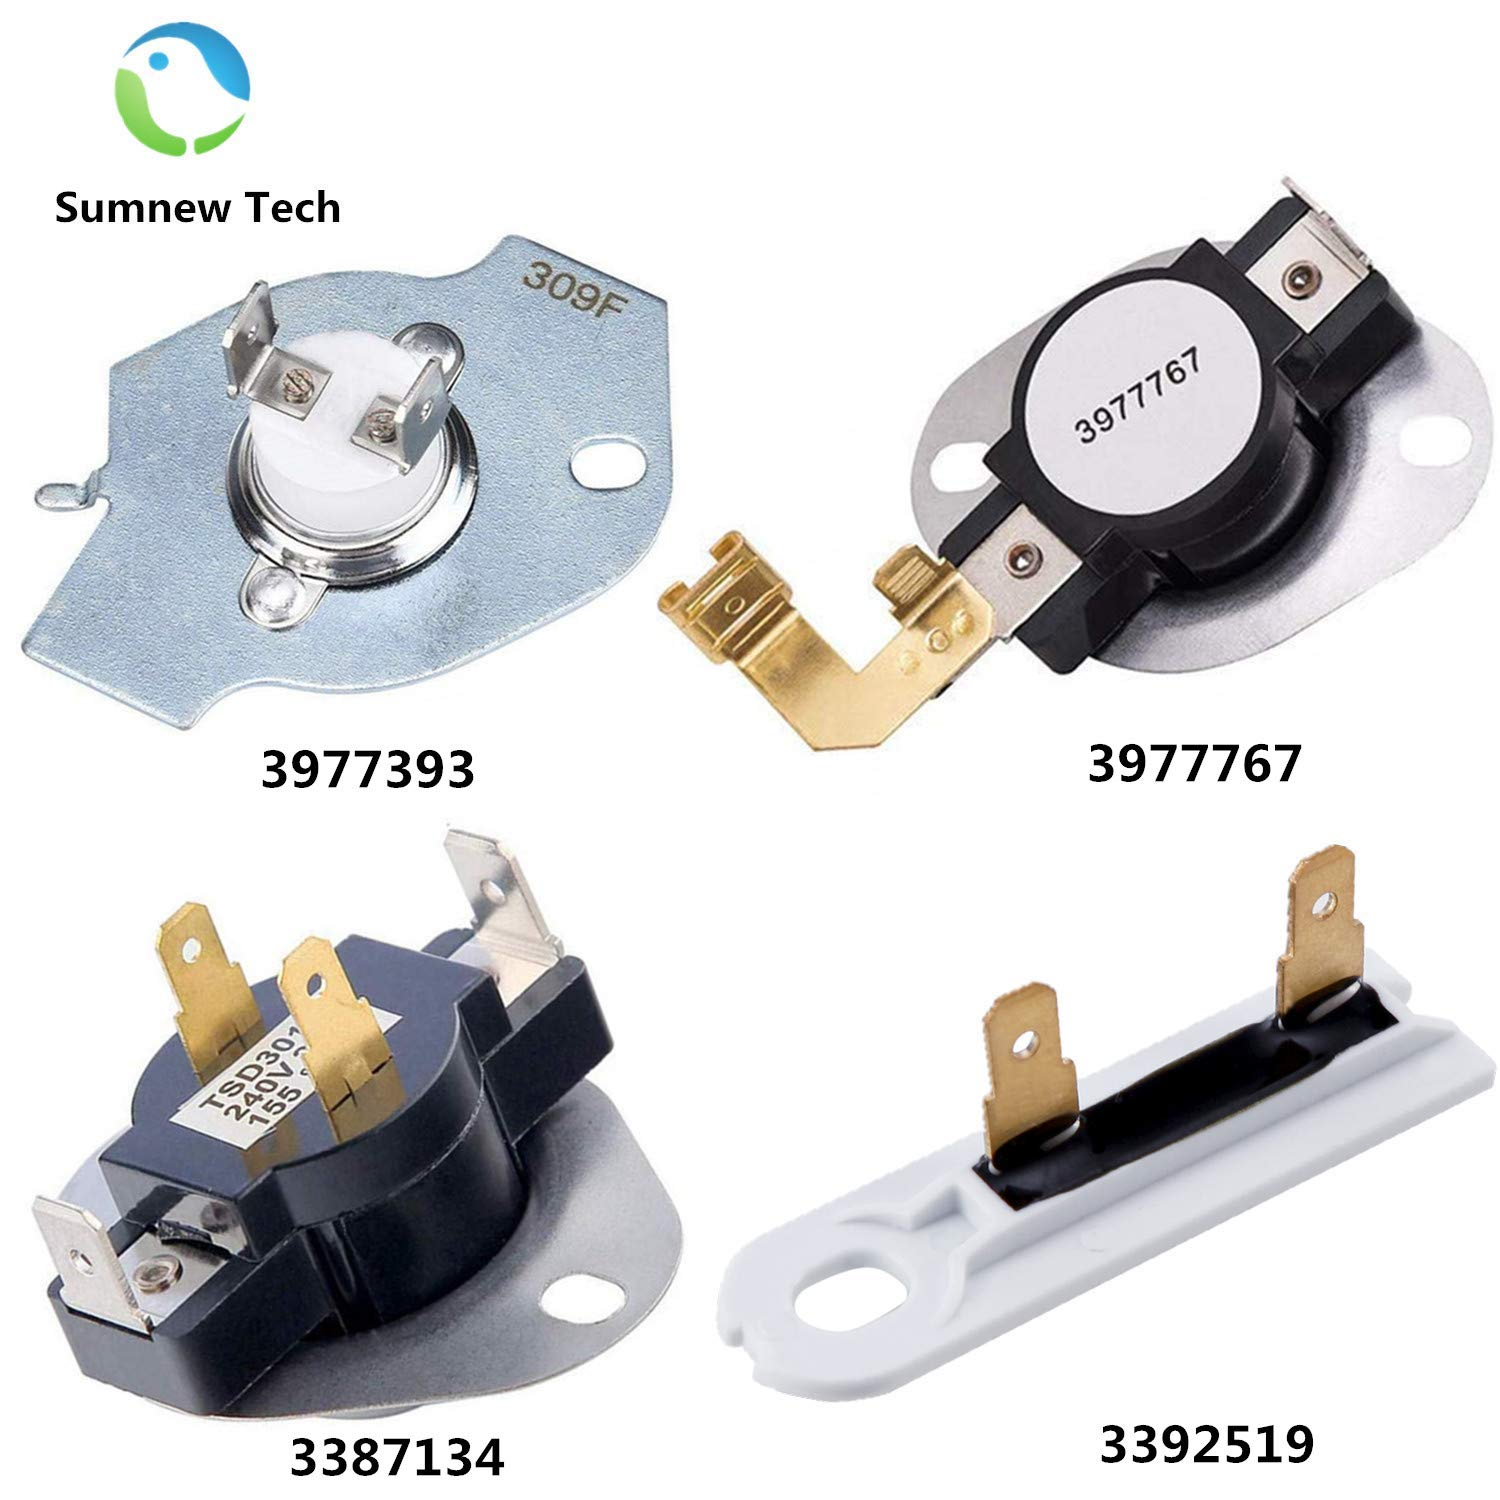 3387134 High-Limit Thermostat 3392519 Dryer Thermal Fuse 3977393 Thermal Cut-off Switch 3977767 Cycling Thermostat by Sumnew Tech Replacement For Whirlpool & Kenmore Clothes Dryers by Sumnew Tech